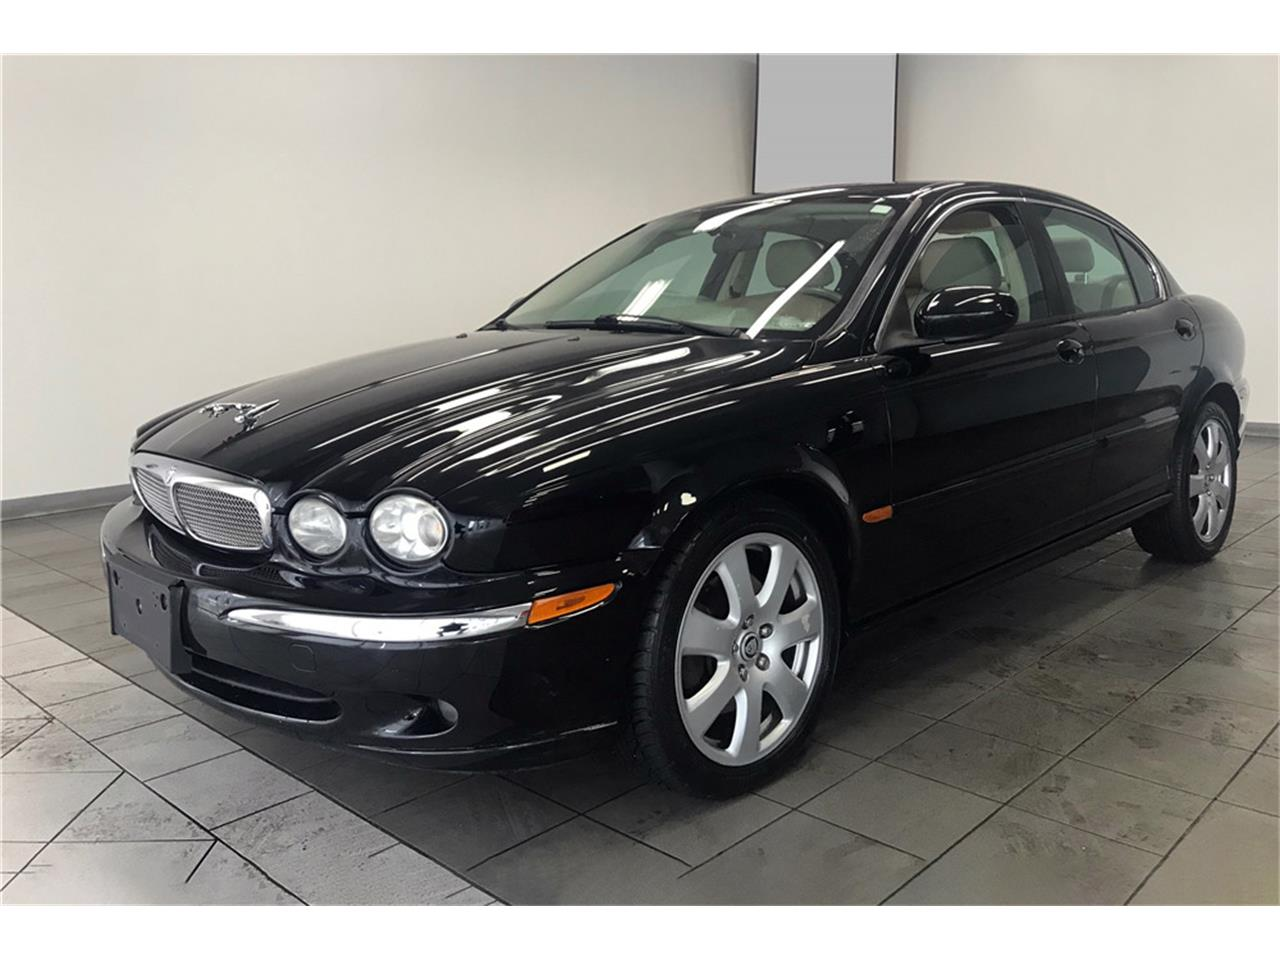 2006 Jaguar X Type For Sale In West Palm Beach Fl